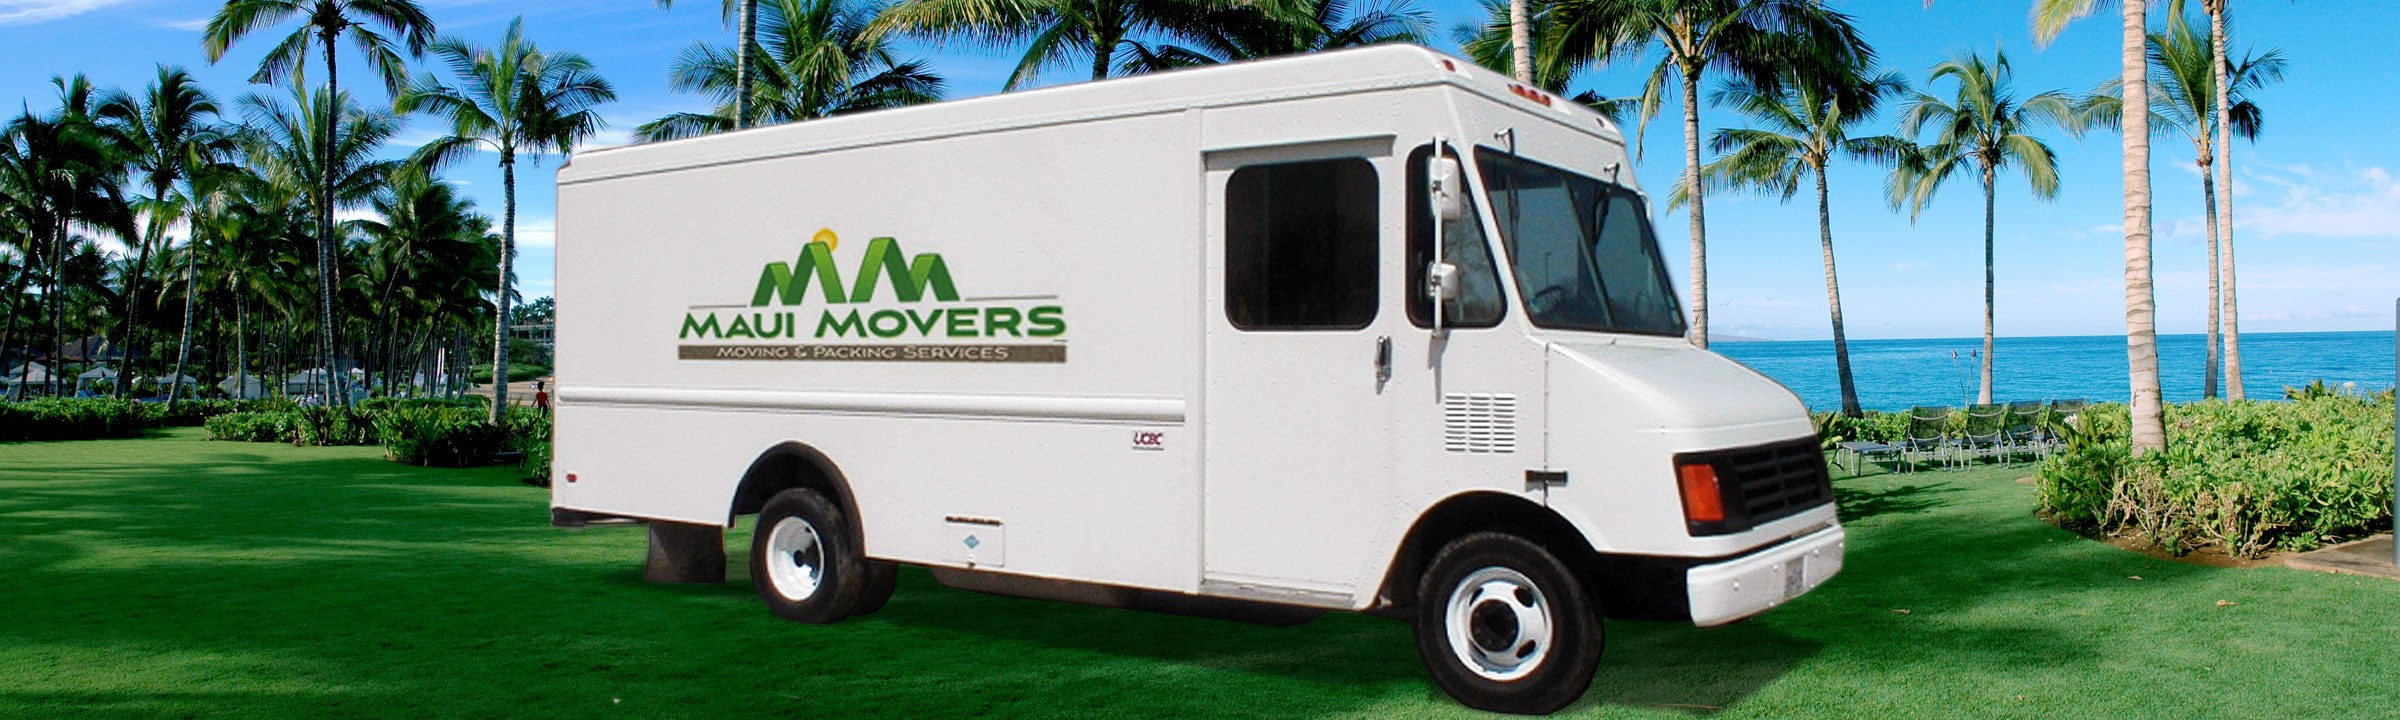 Maui Movers, LLC, P.O. Box 365, Kula, Maui, Hawaii 96790